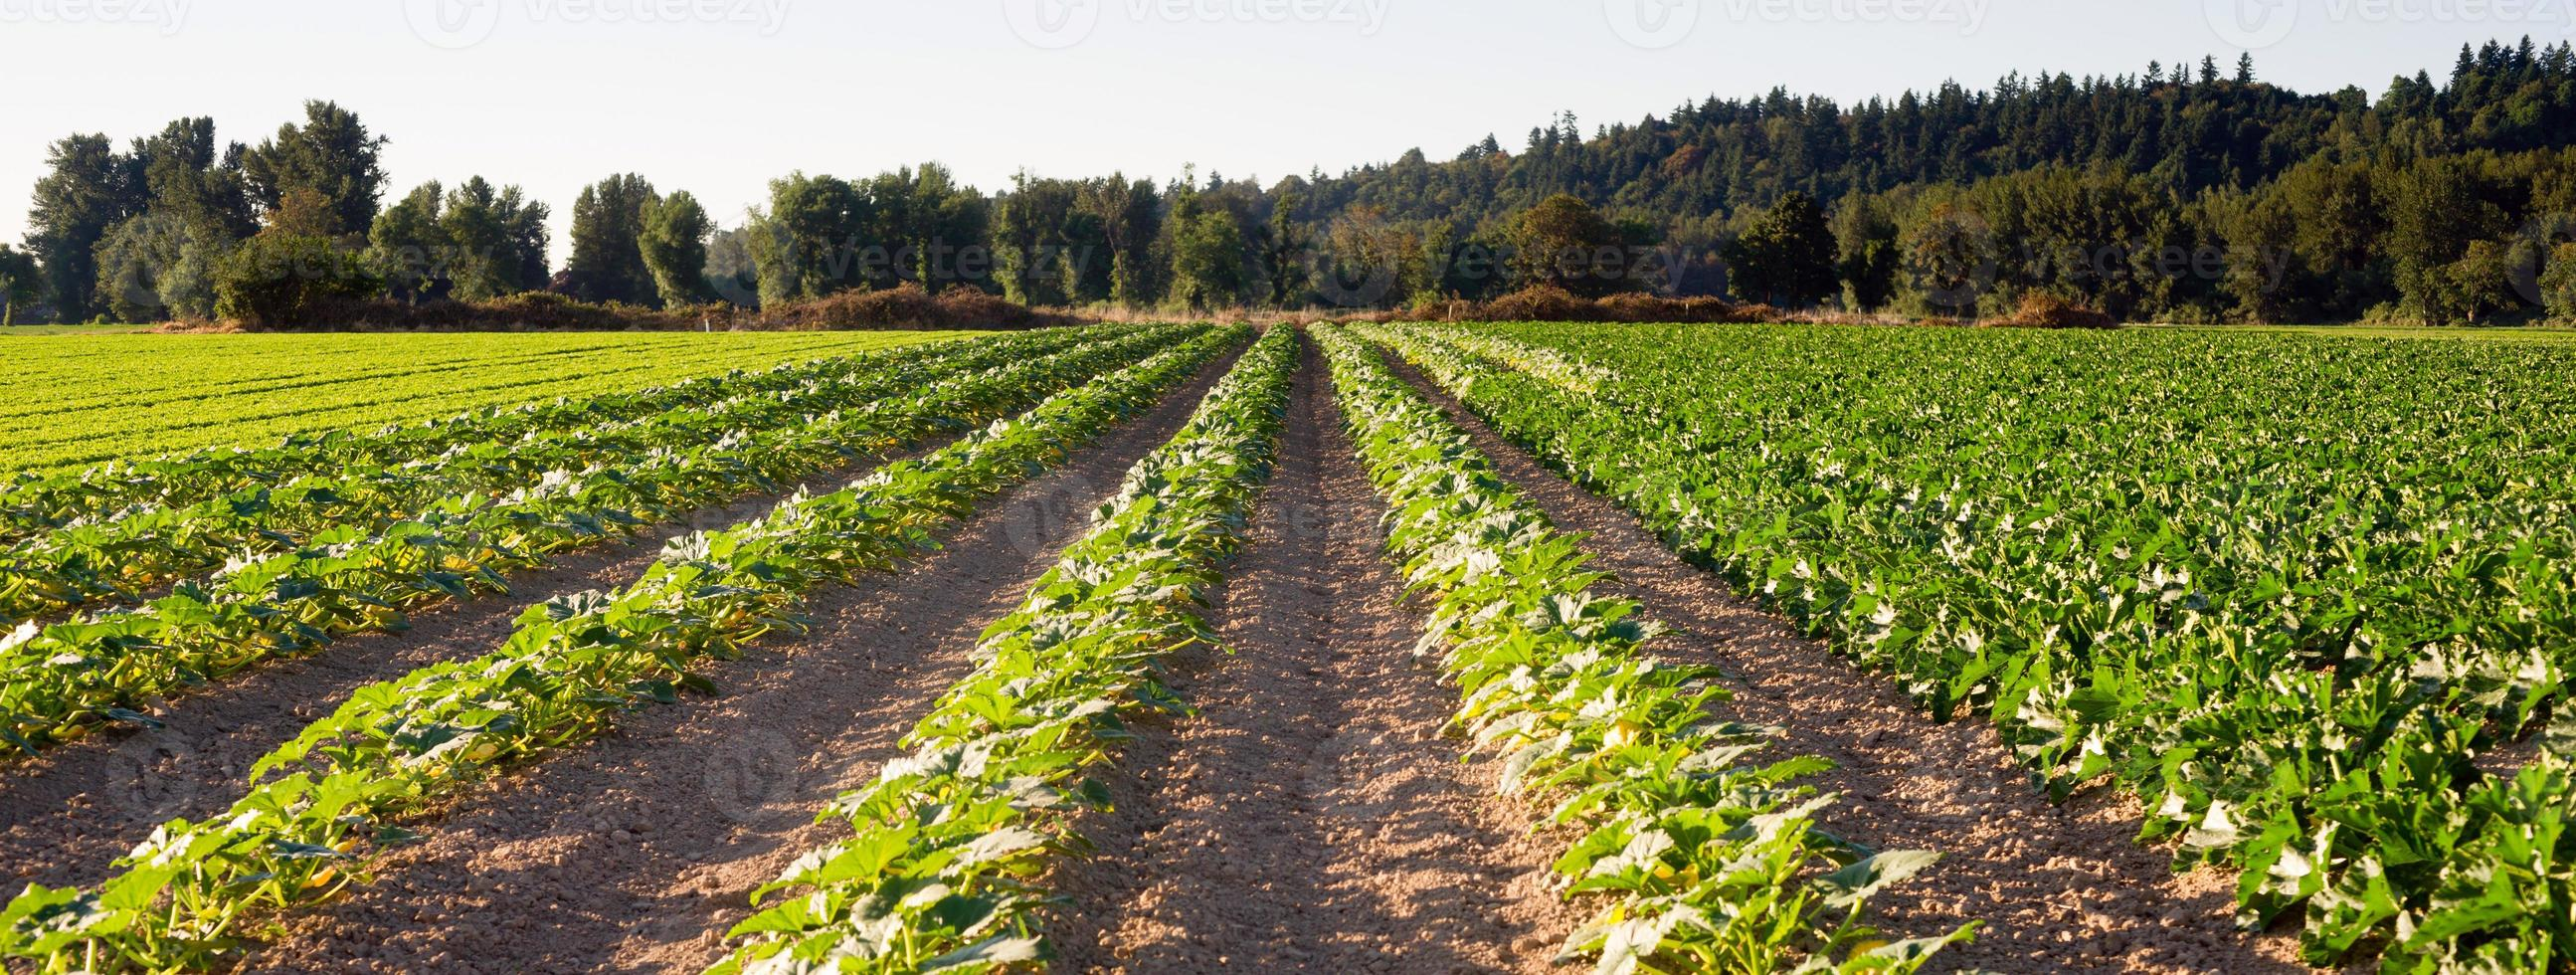 Planted Rows Herb Farm Agricultural Field Plant Crop photo